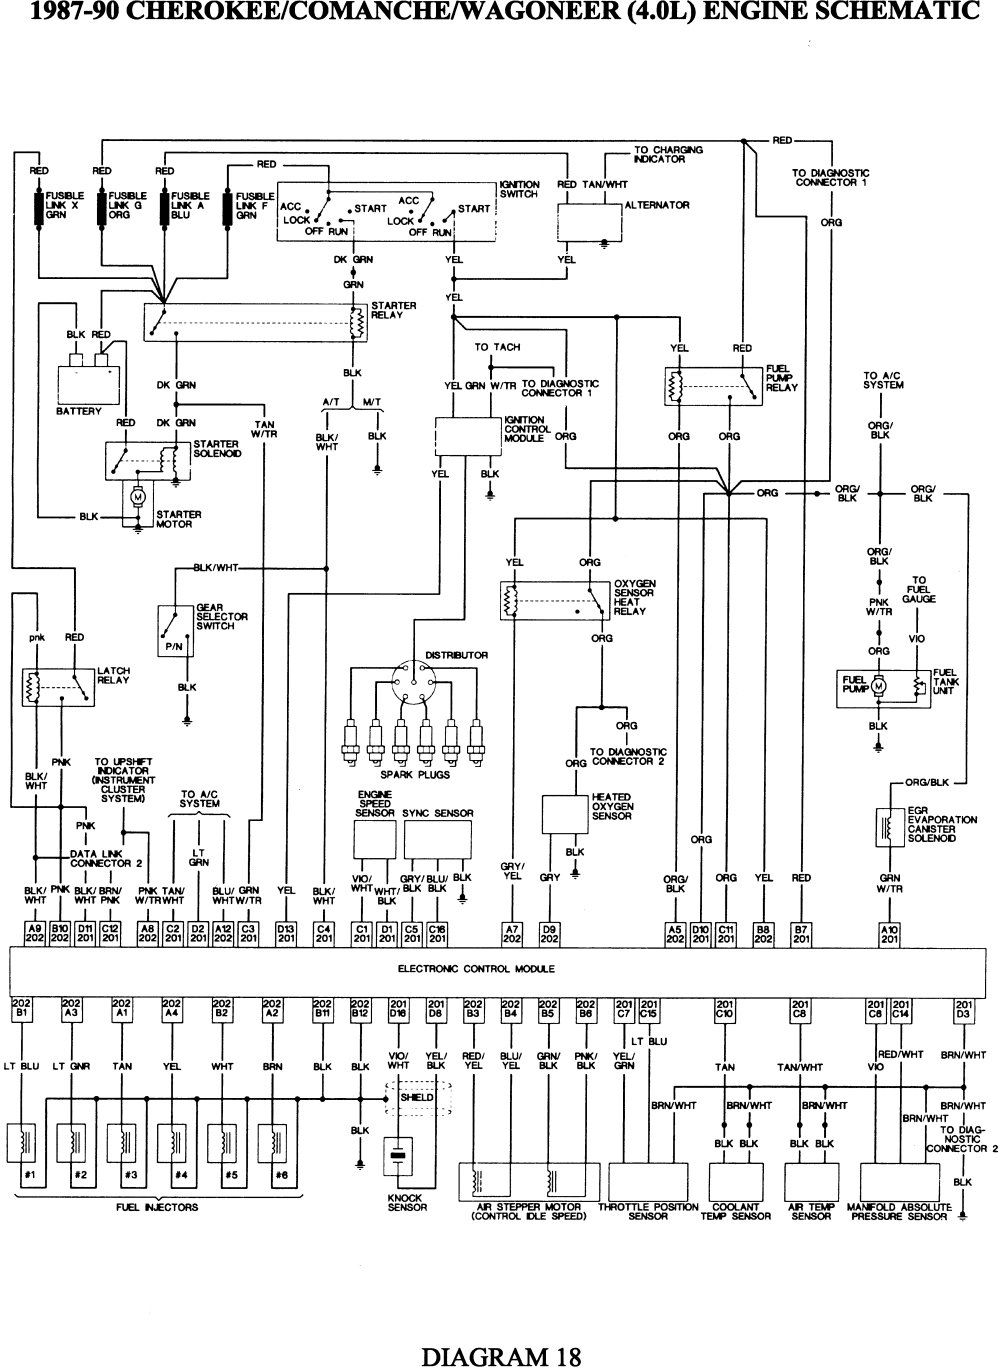 small resolution of wire diagram 86 jeep mj wiring diagram schematic 1991 jeep comanche engine diagram wiring diagram schematic